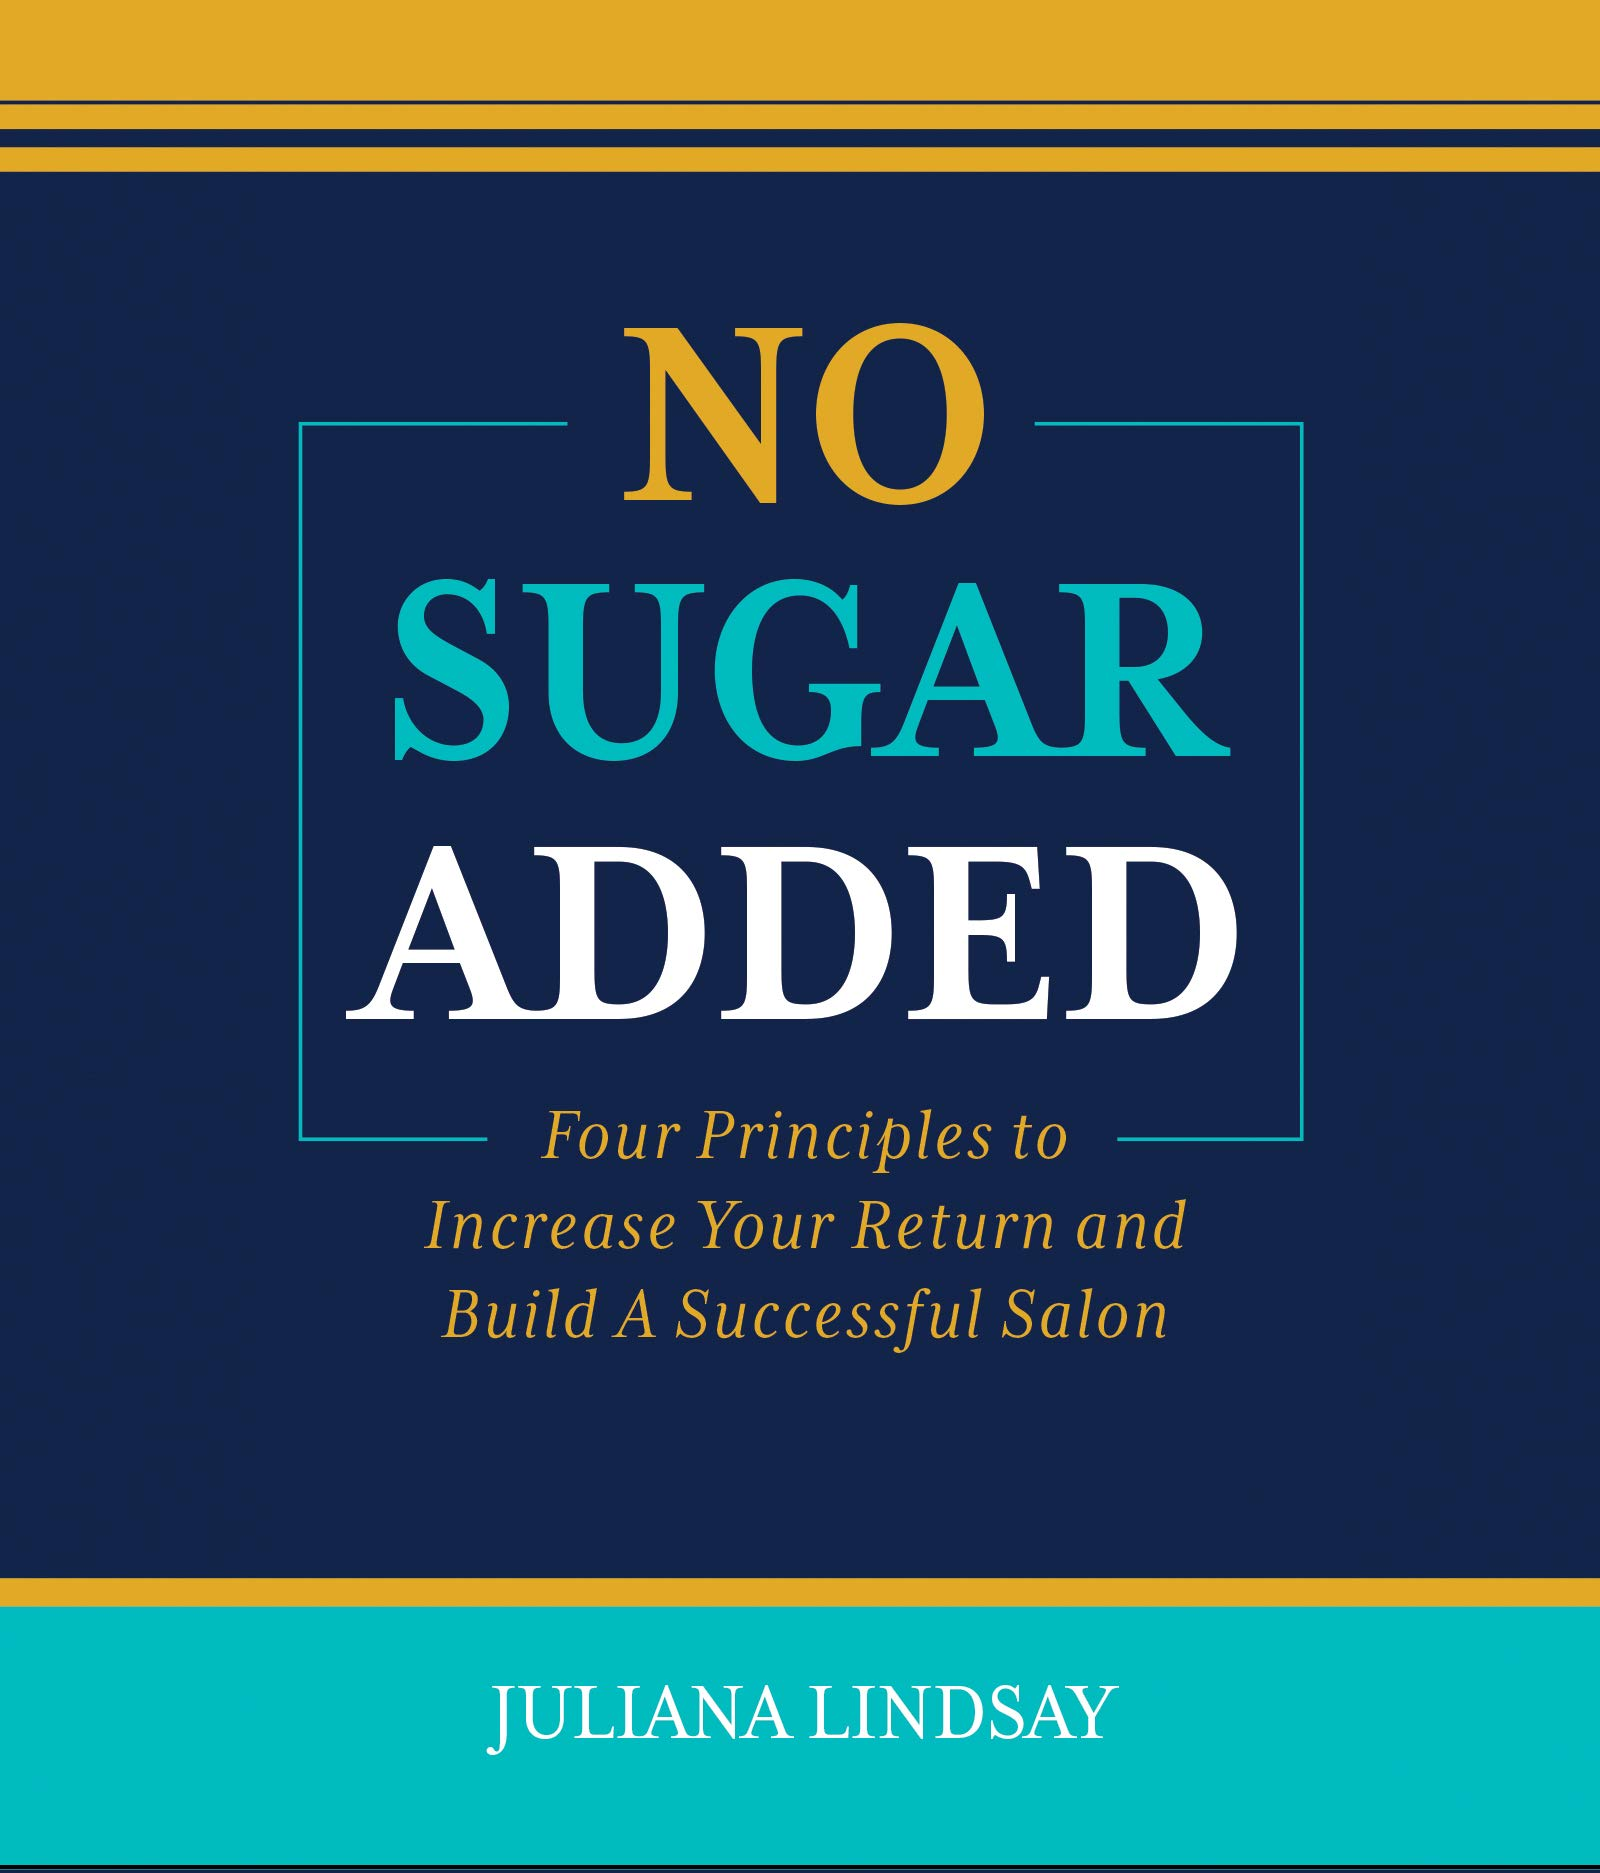 No Sugar Added: Four Principles to Increase Your Return and Build A Successful Salon